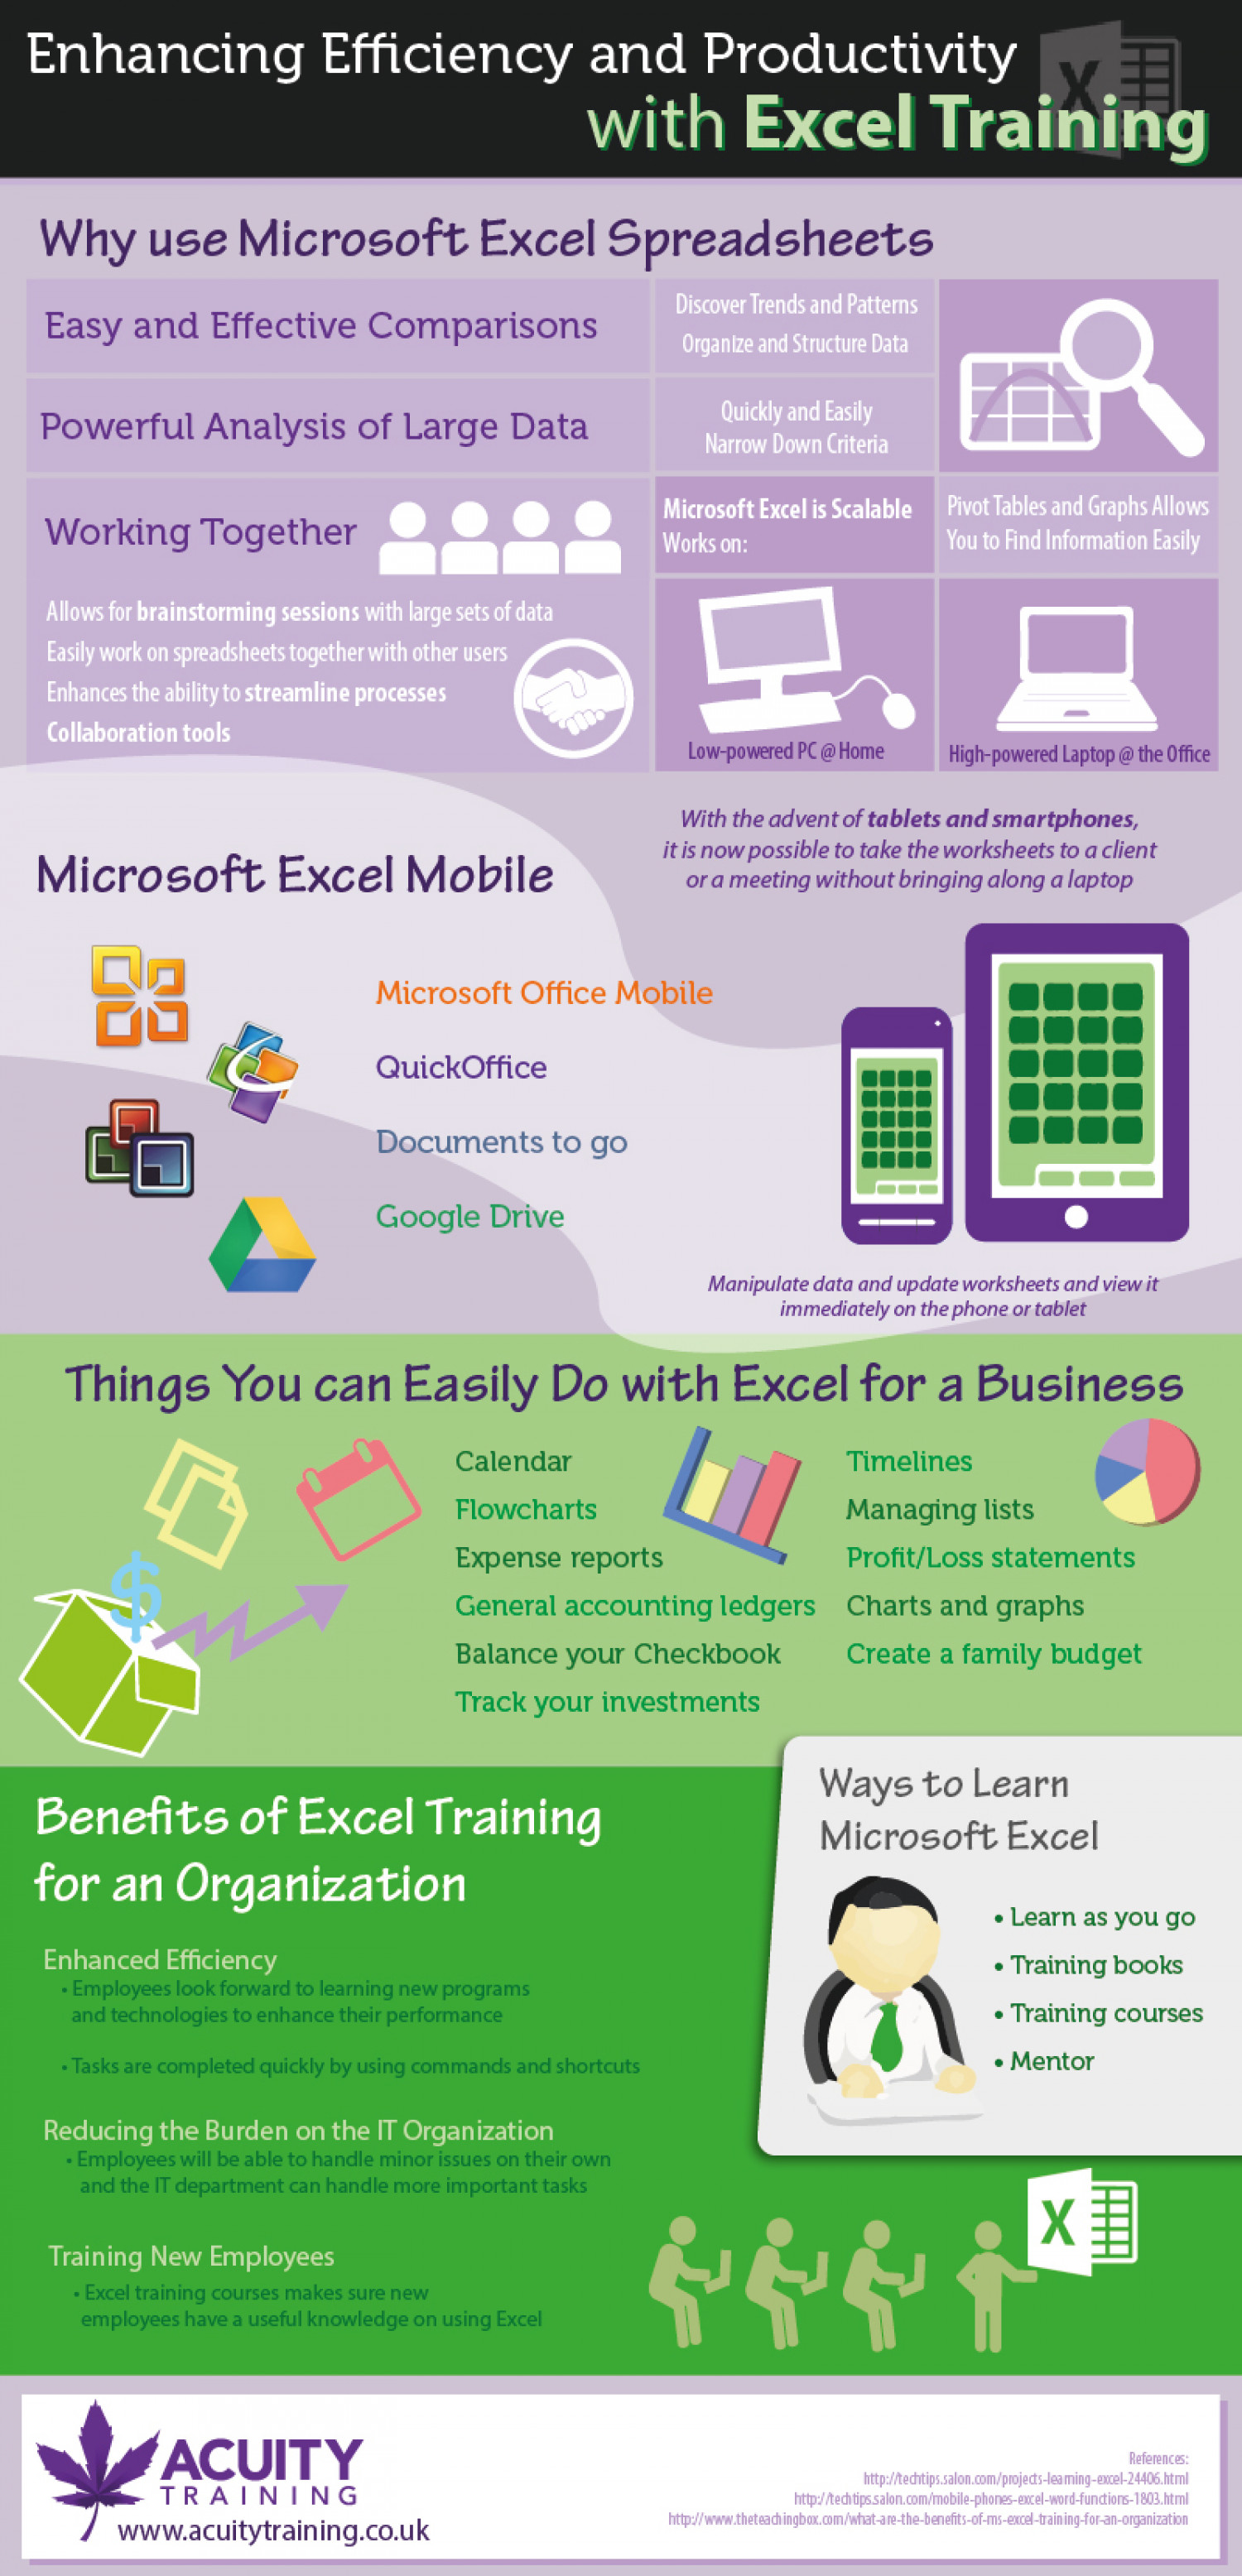 Enhancing Efficiency and Productivity with Excel Training Infographic